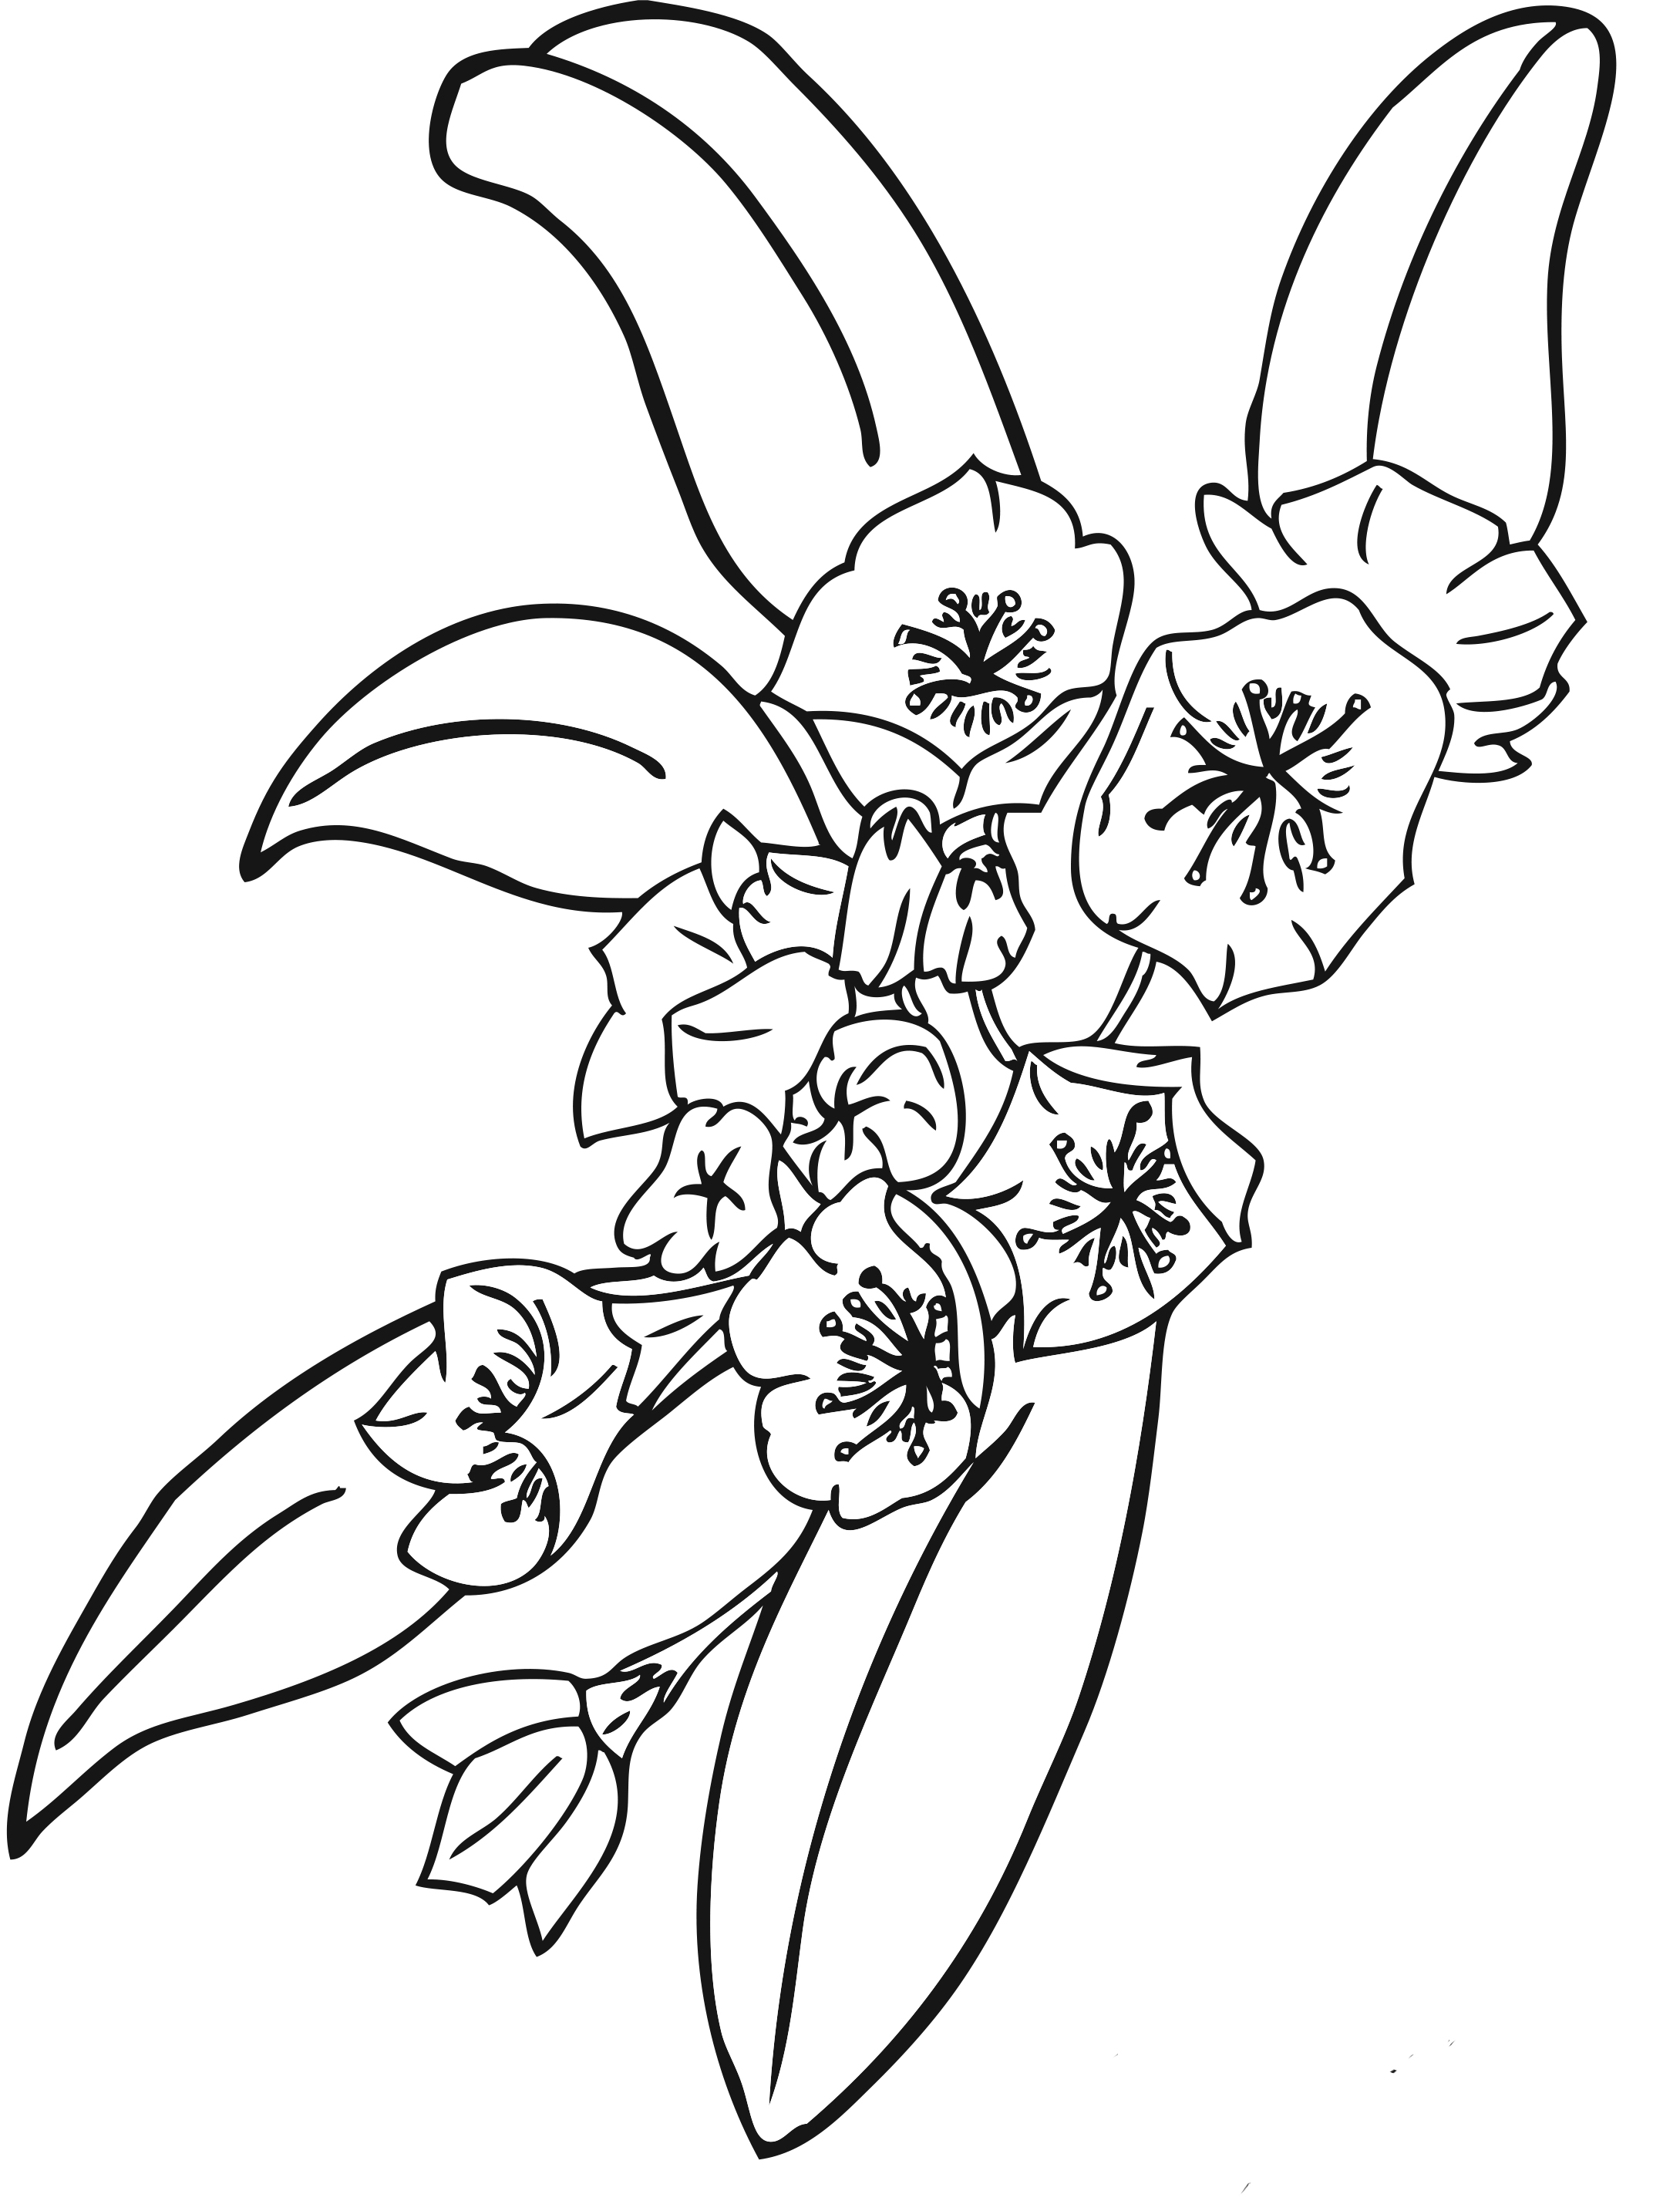 flower coloring pages free printable free printable flower coloring pages for kids best pages printable coloring free flower